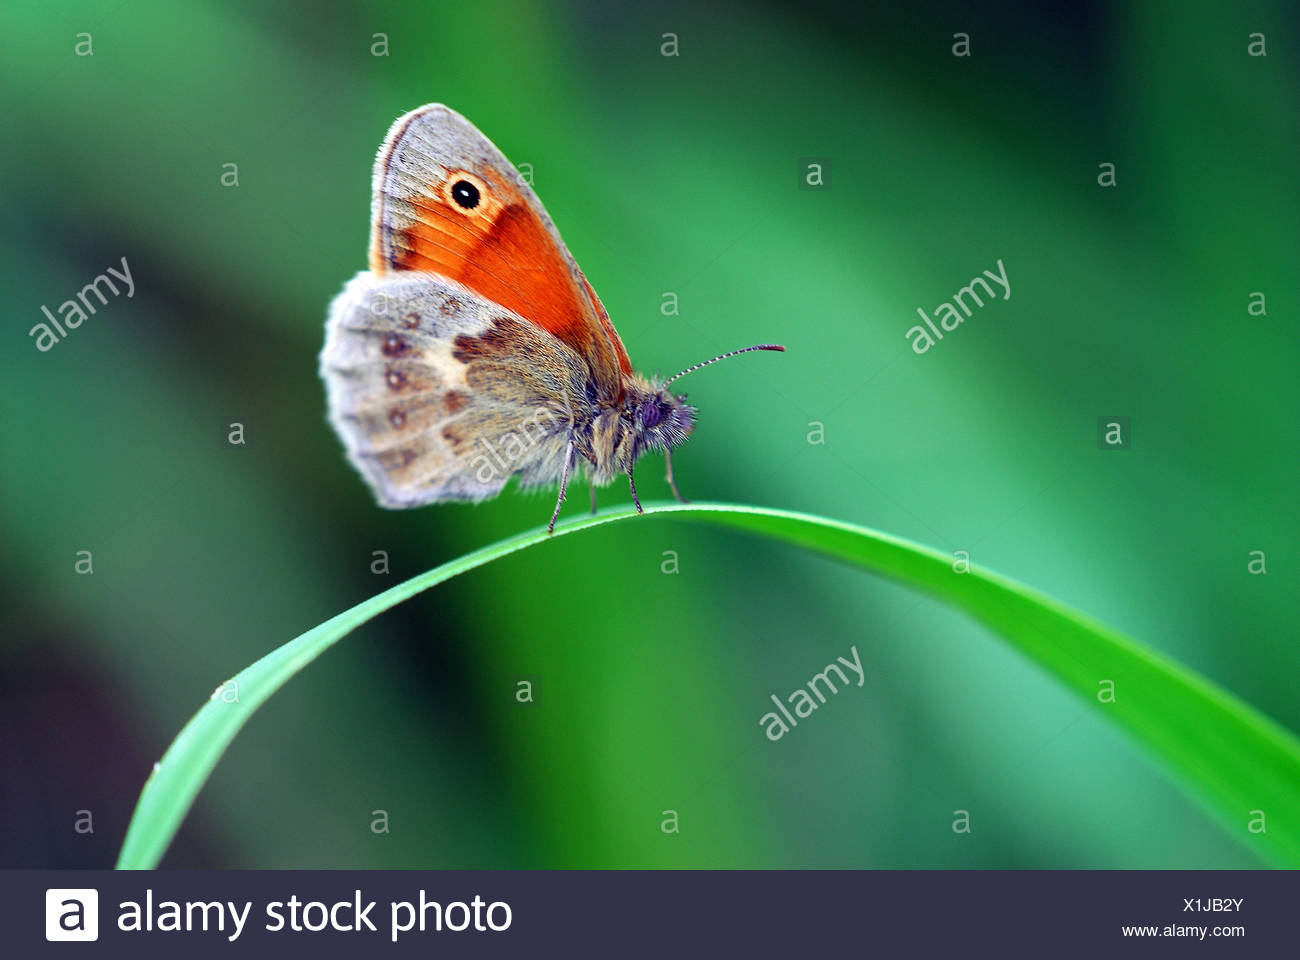 finger animal insect - Stock Image